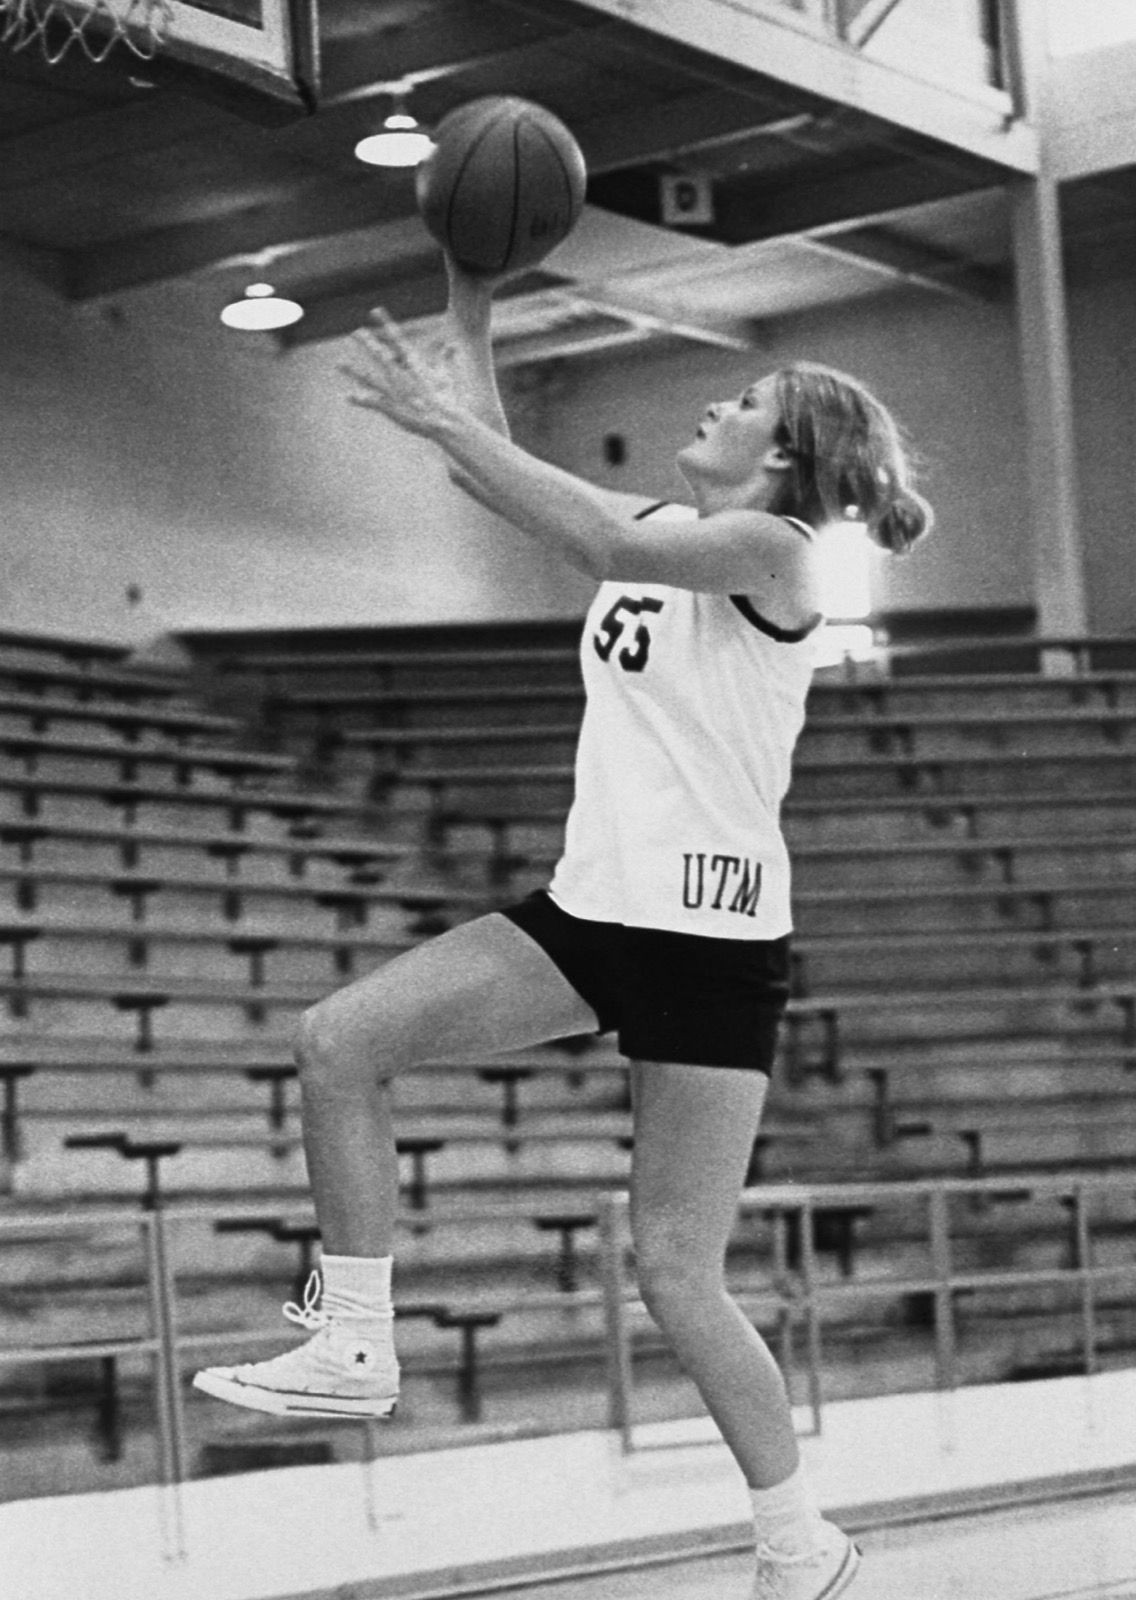 Above is Pat Head Summitt going up for a lay-up.